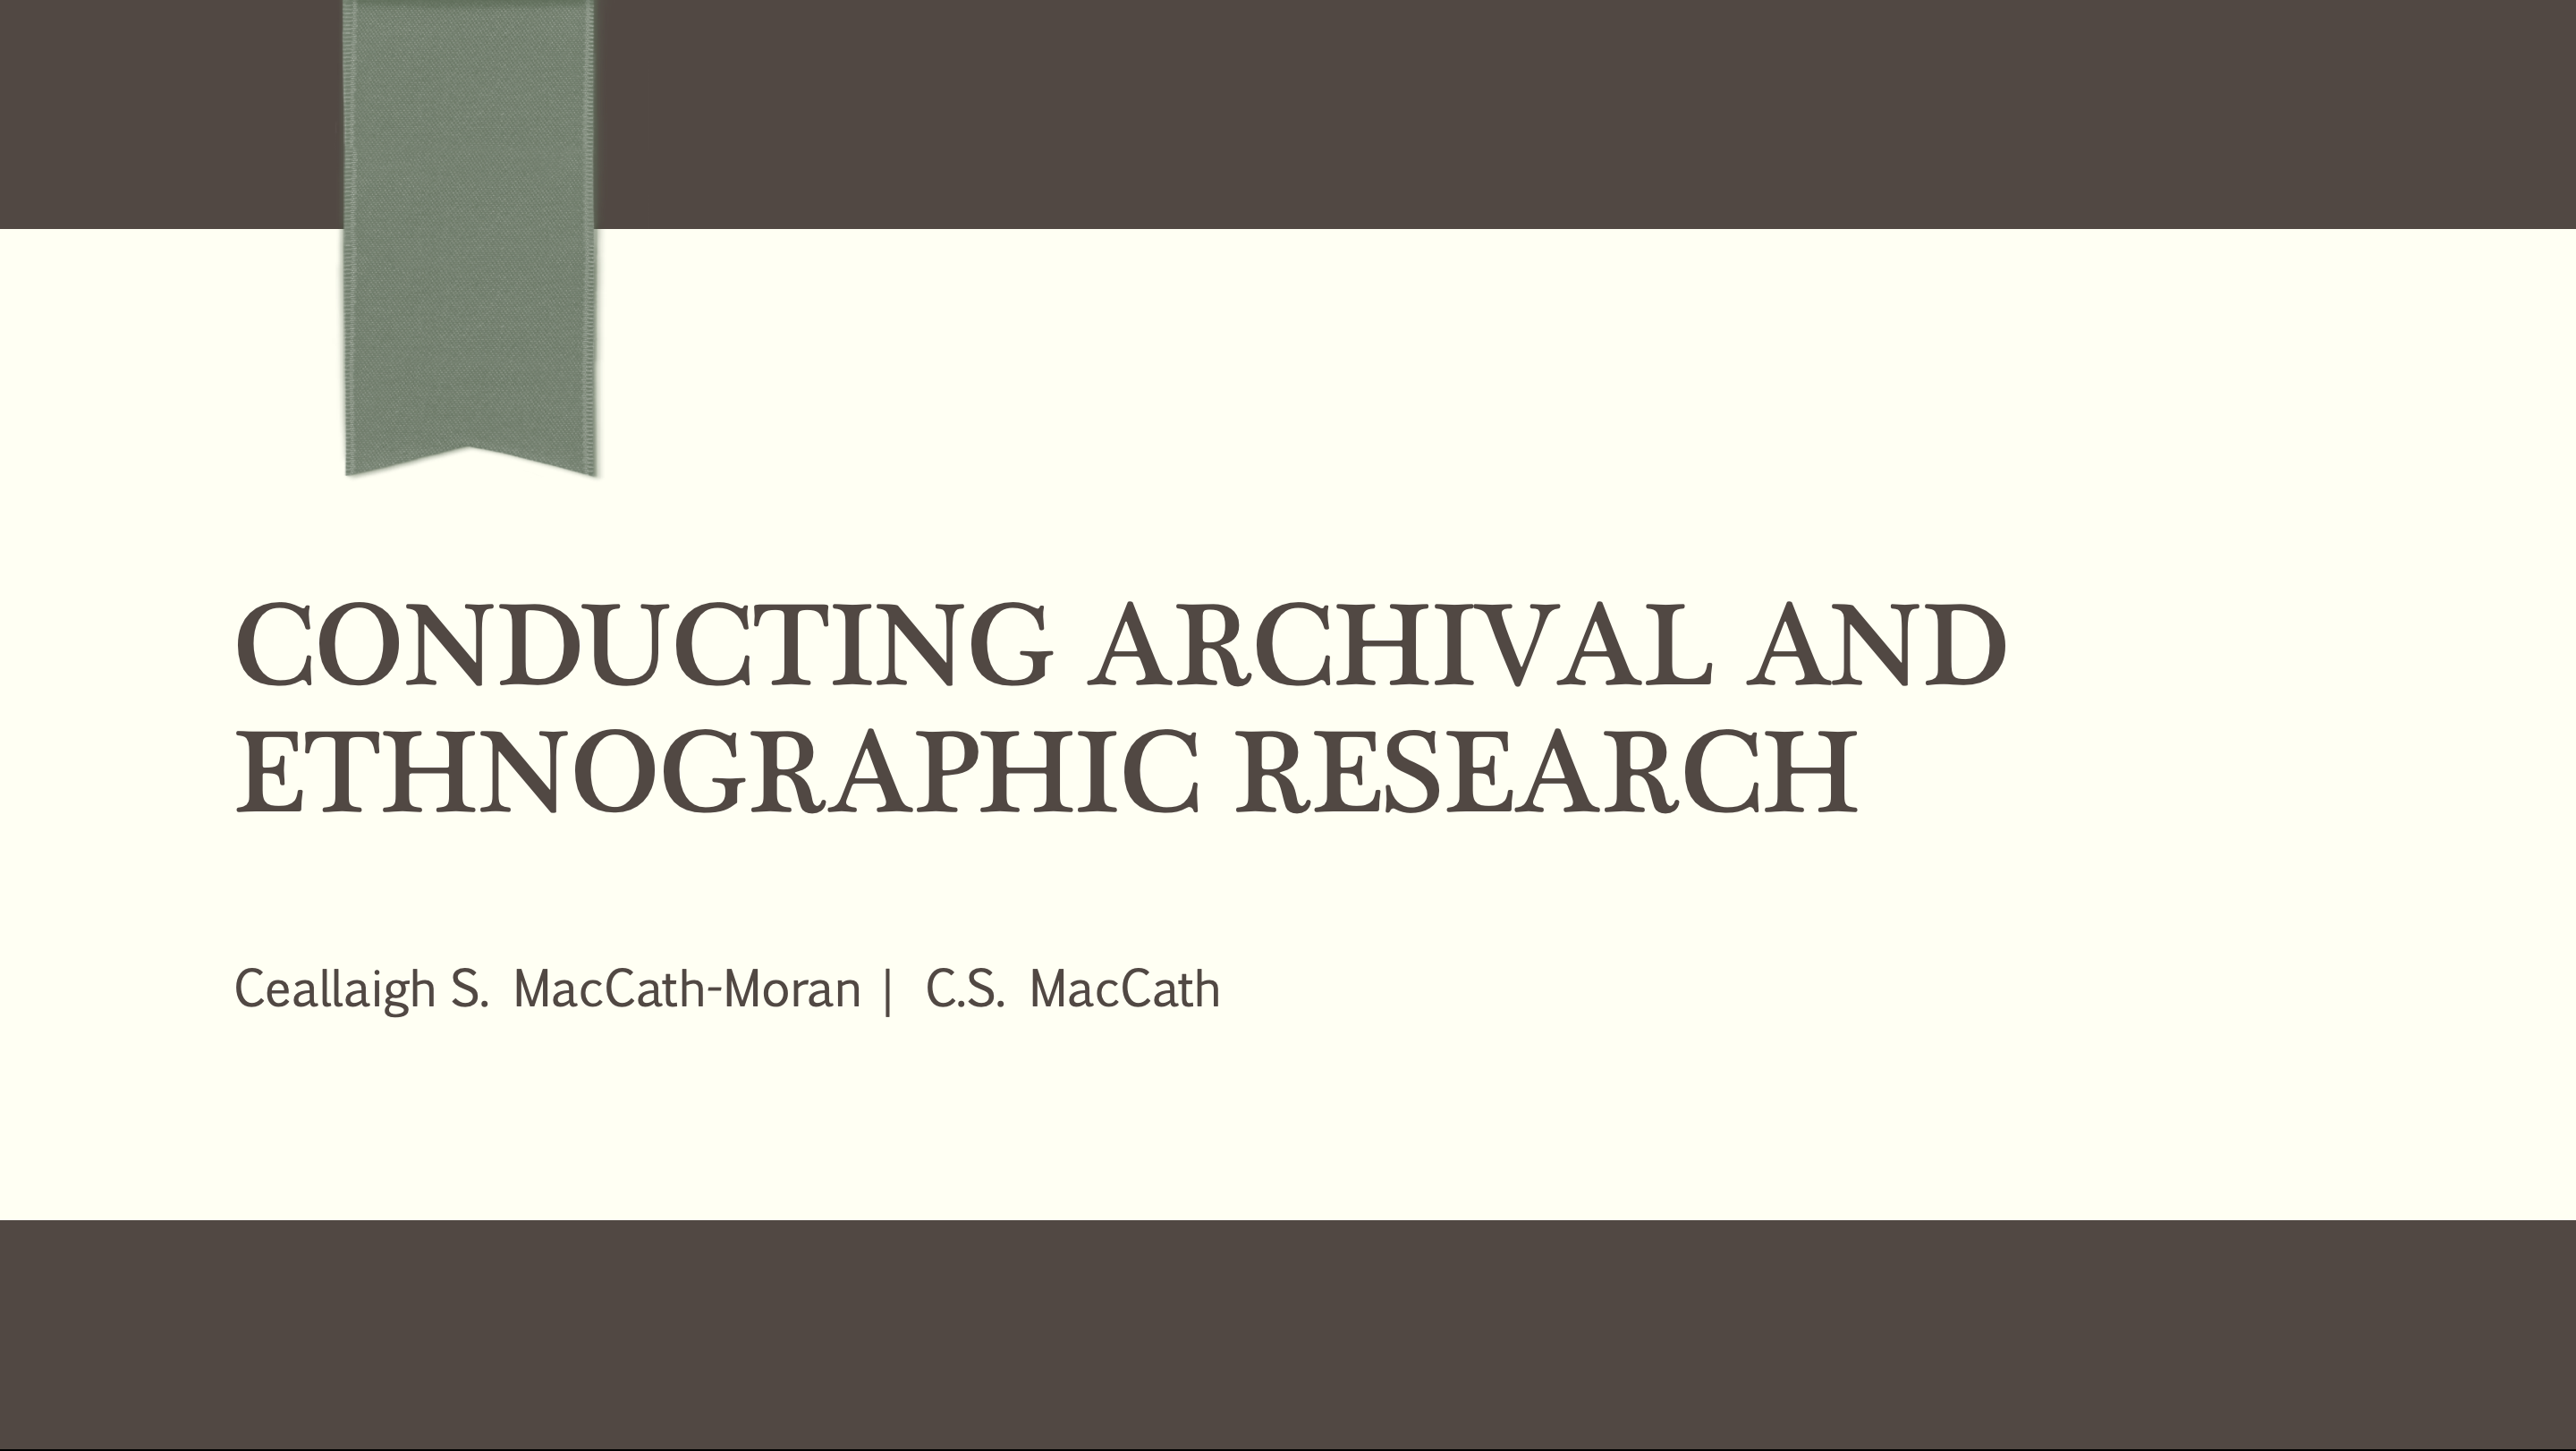 Conducting Archival and Ethnographic Research